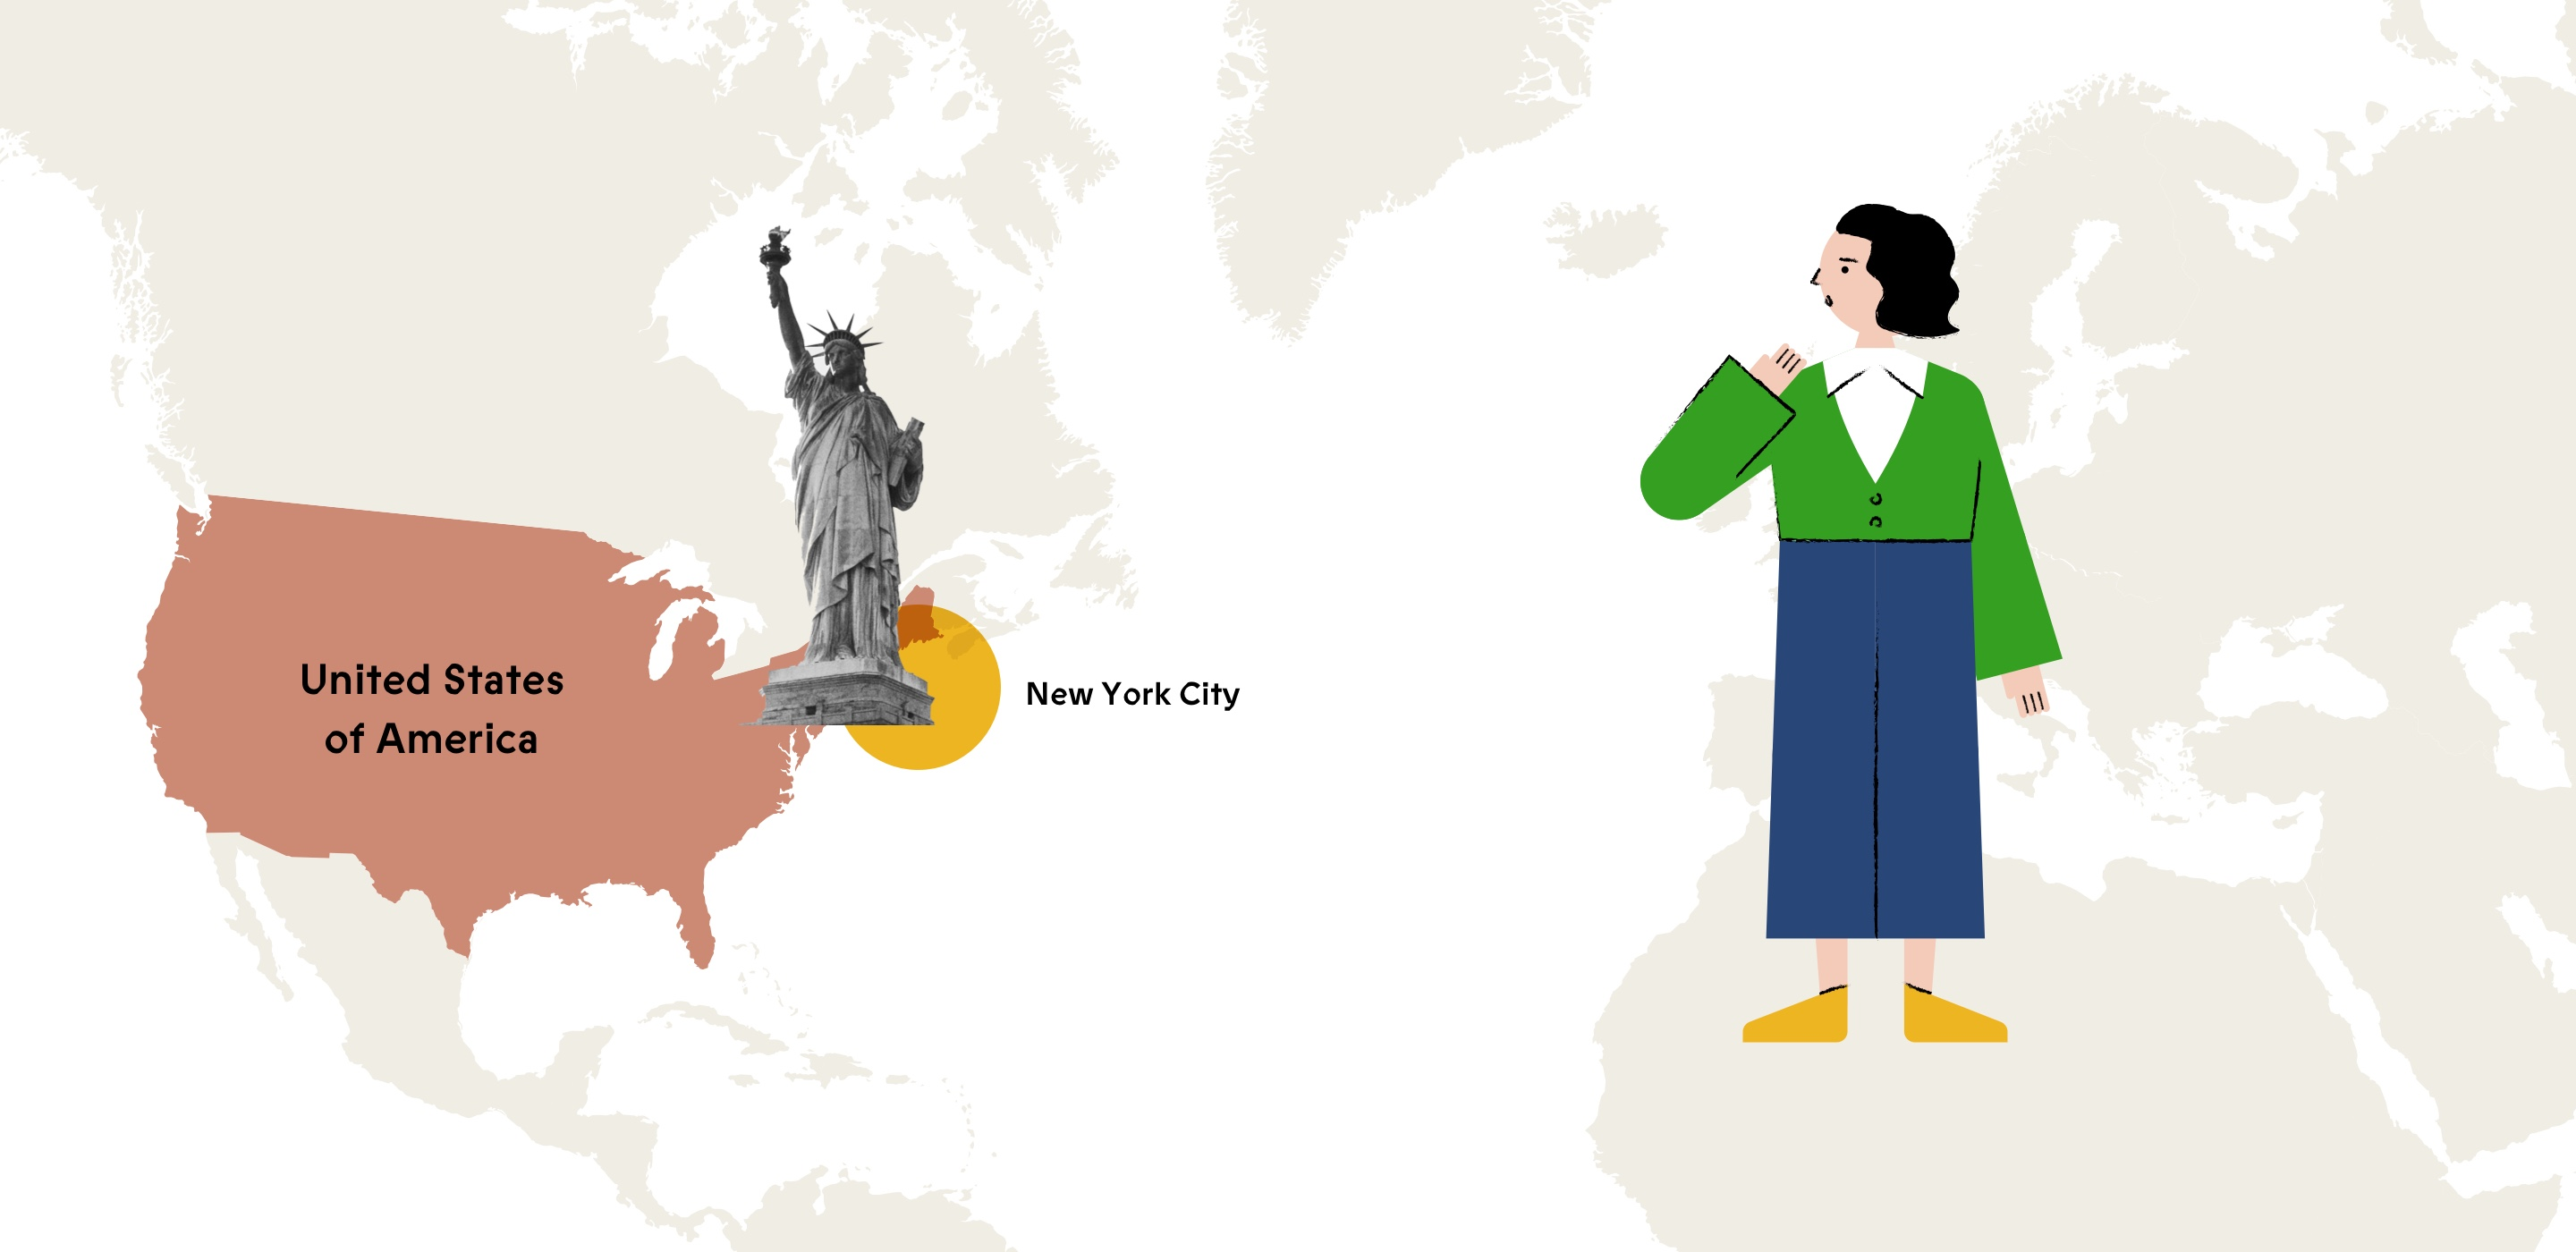 Illustration of Beba and a map highlighting the United States / New York